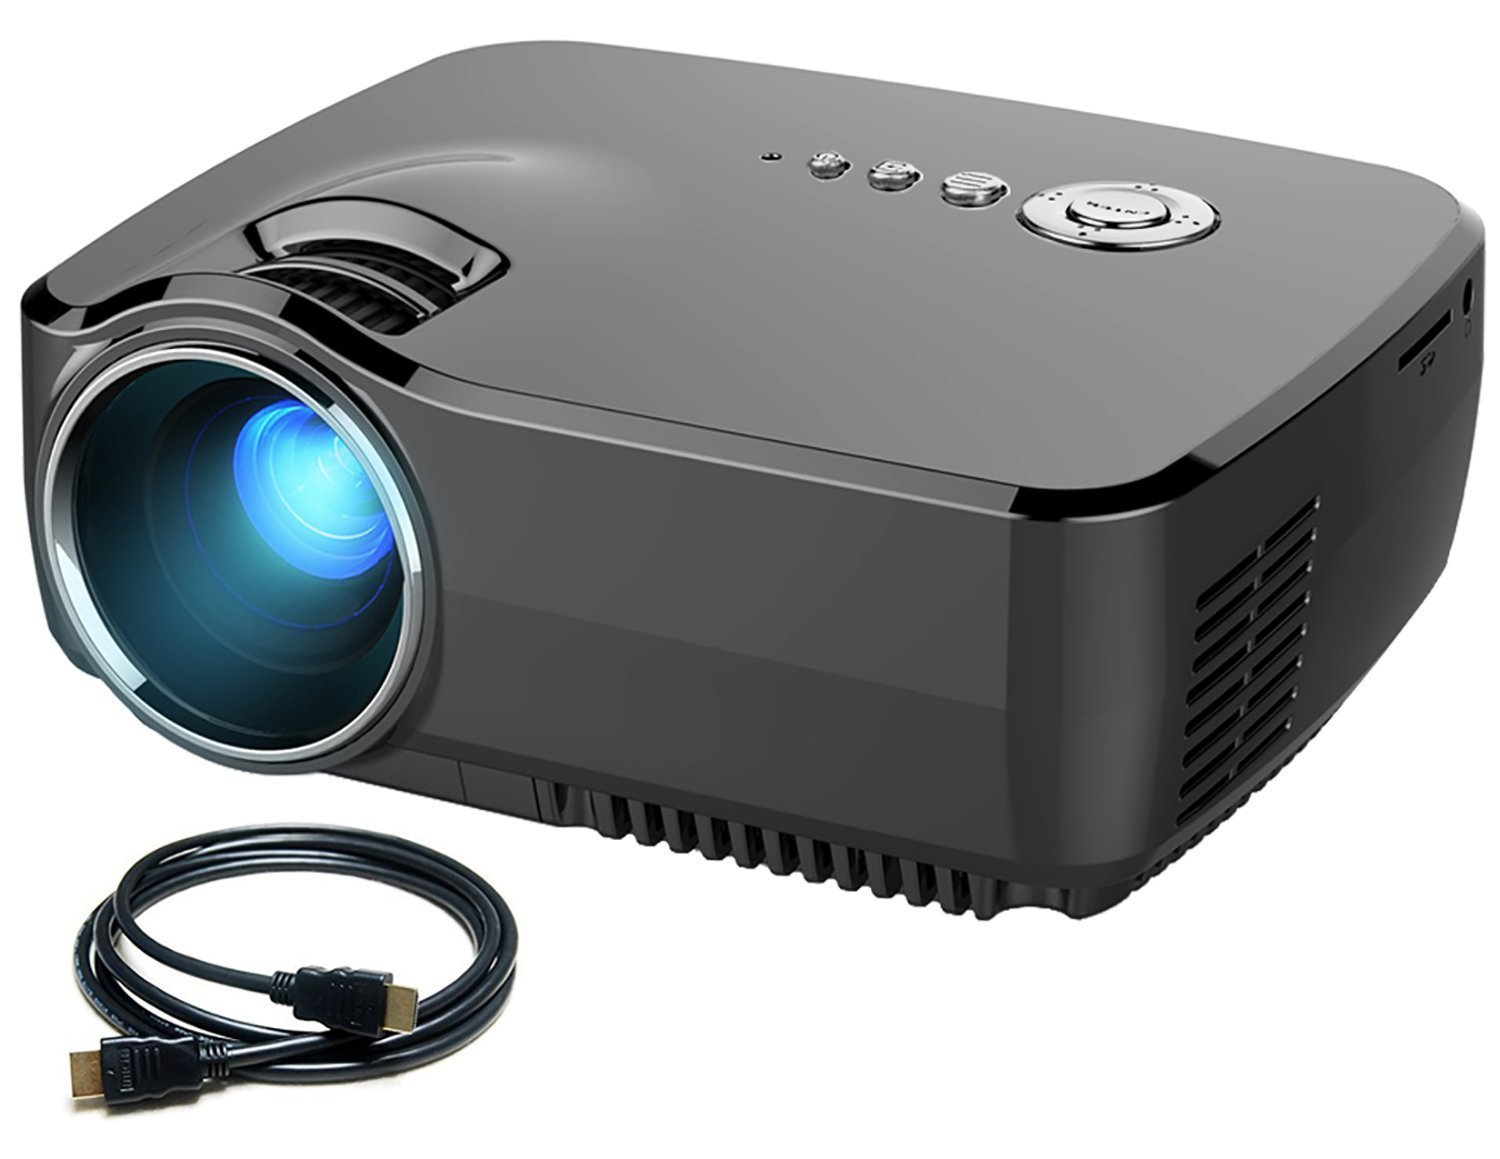 "Micro Projector Meyoung HD Movie Portable Projectors 1200 Lumens 1080P 150"" Built-in TV Tuner for Home Theater,PS2/PS3/XBOX Games,Iphone,Ipad,Mac via HDMI/USB/AV/SD/VGA Port (GP70 Black)"